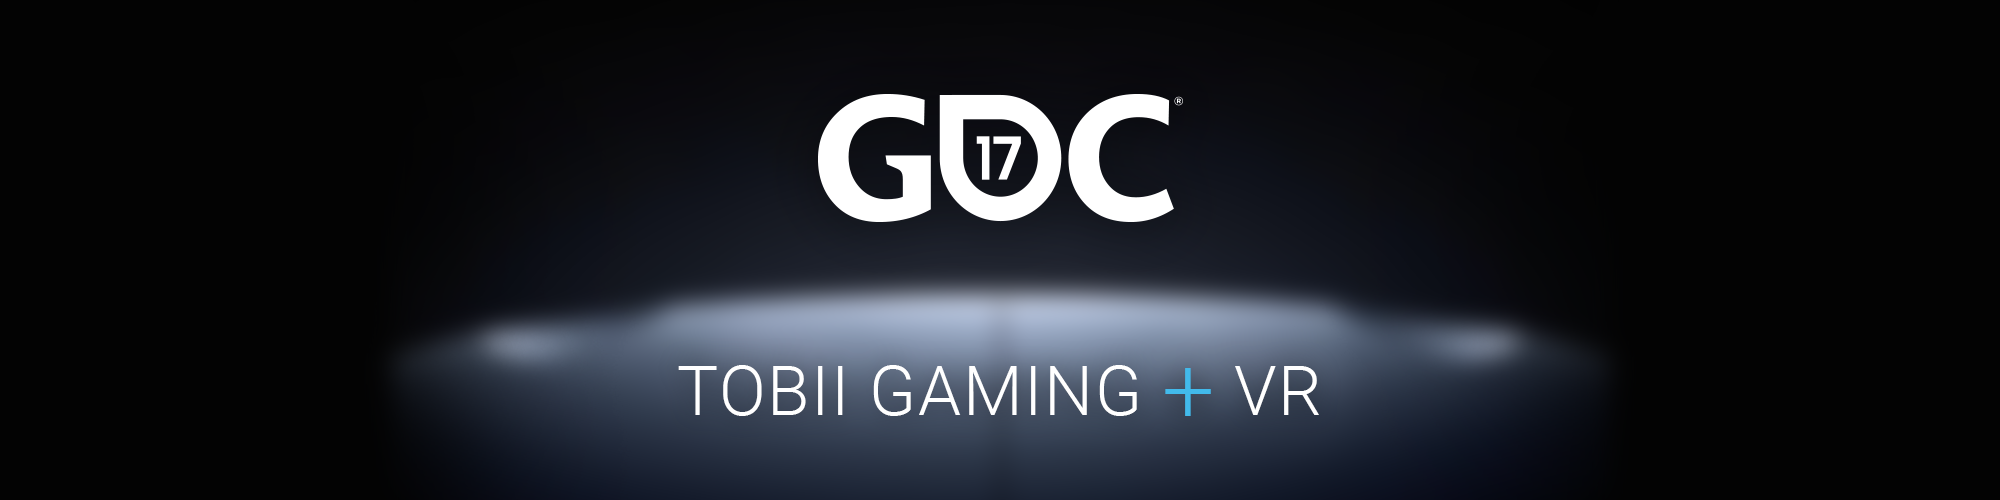 GDC 2017 — We are extending into VR.